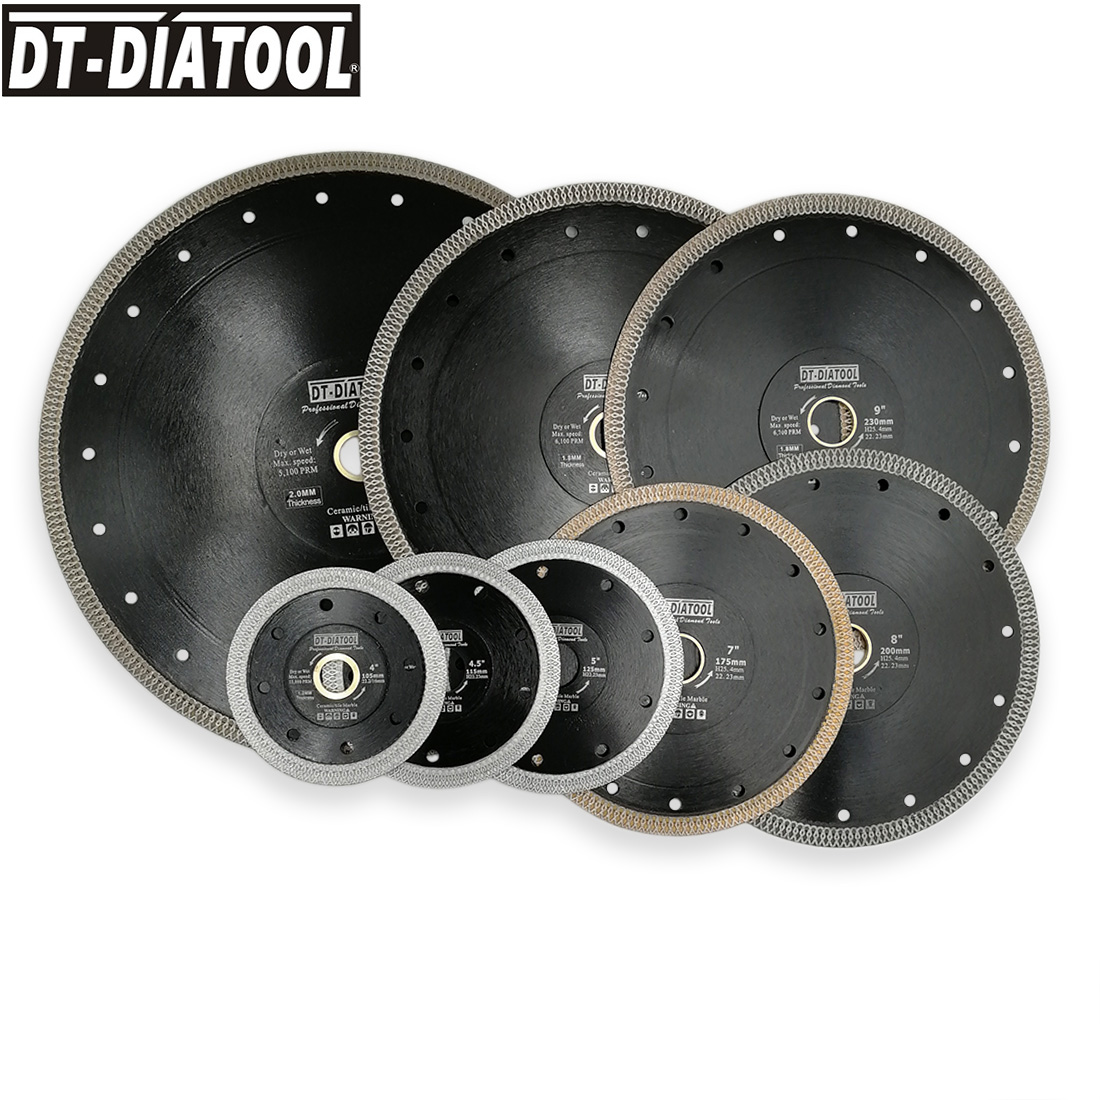 "DT DIATOOL 1pc Dia 4"" 12"" Super thin Diamond Cutting Disc X Mesh Turbo rim segment Saw Blades for Ceramic Tile Porcelain-in Saw Blades from Tools"